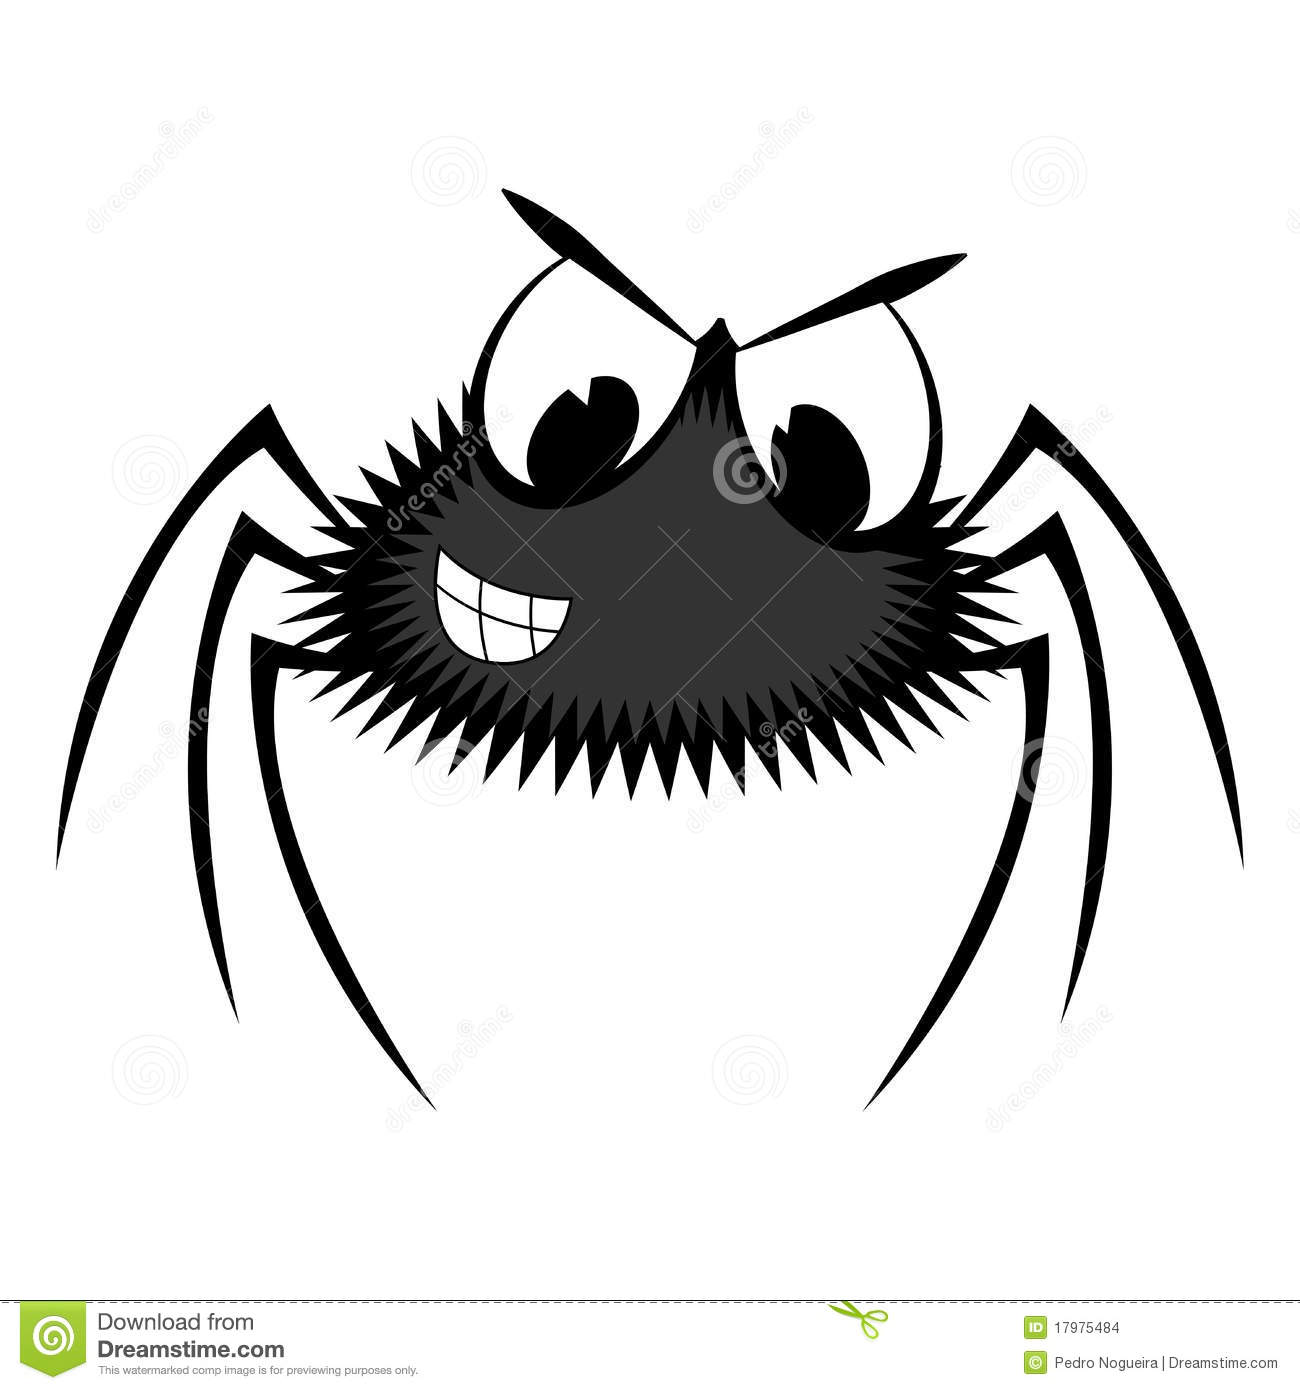 hate spiders quotes